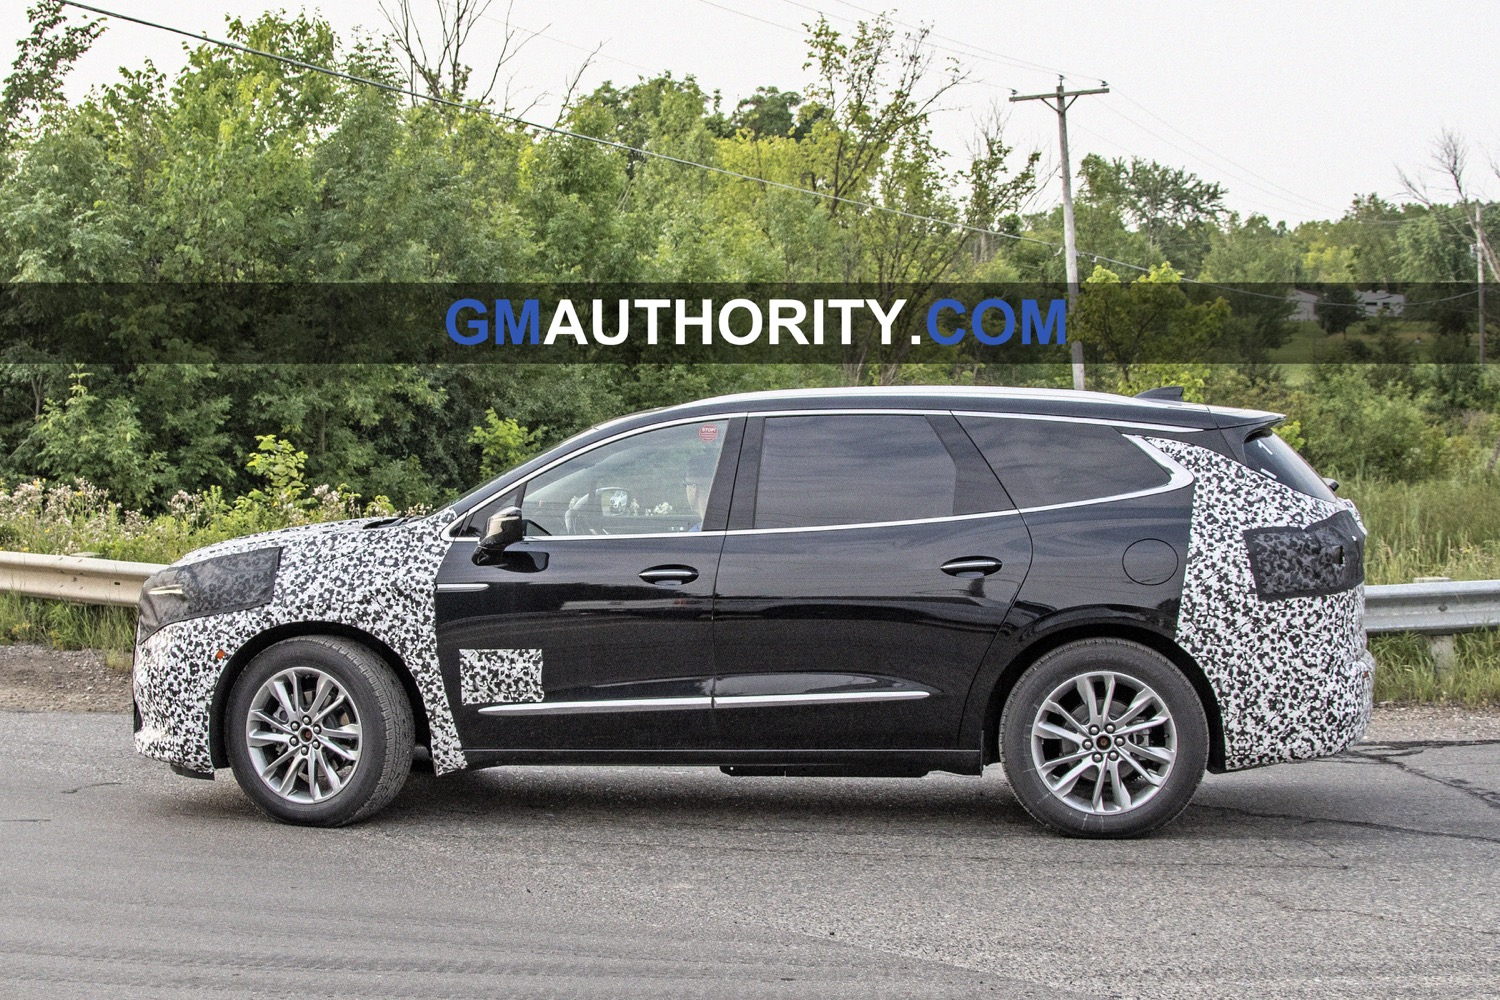 Buick Enclave Refresh Pushed Back To 2022 | Gm Authority New 2022 Buick Enclave Consumer Reviews, Color Options, Engine